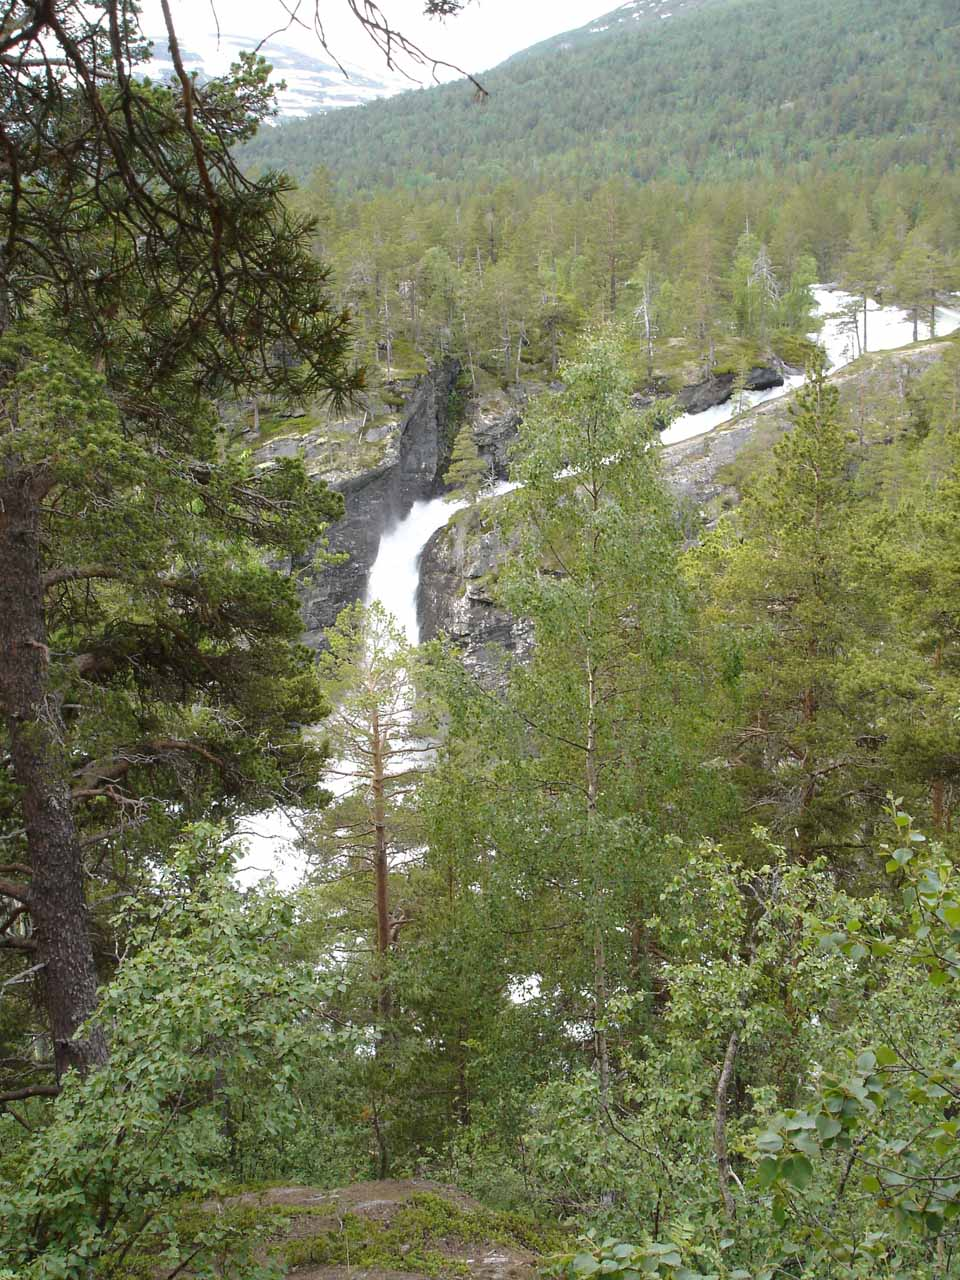 This view of Kleivafossen shows that there were more slides and cascades further upstream before the Ulvåa Stream crashed into the Rauma River